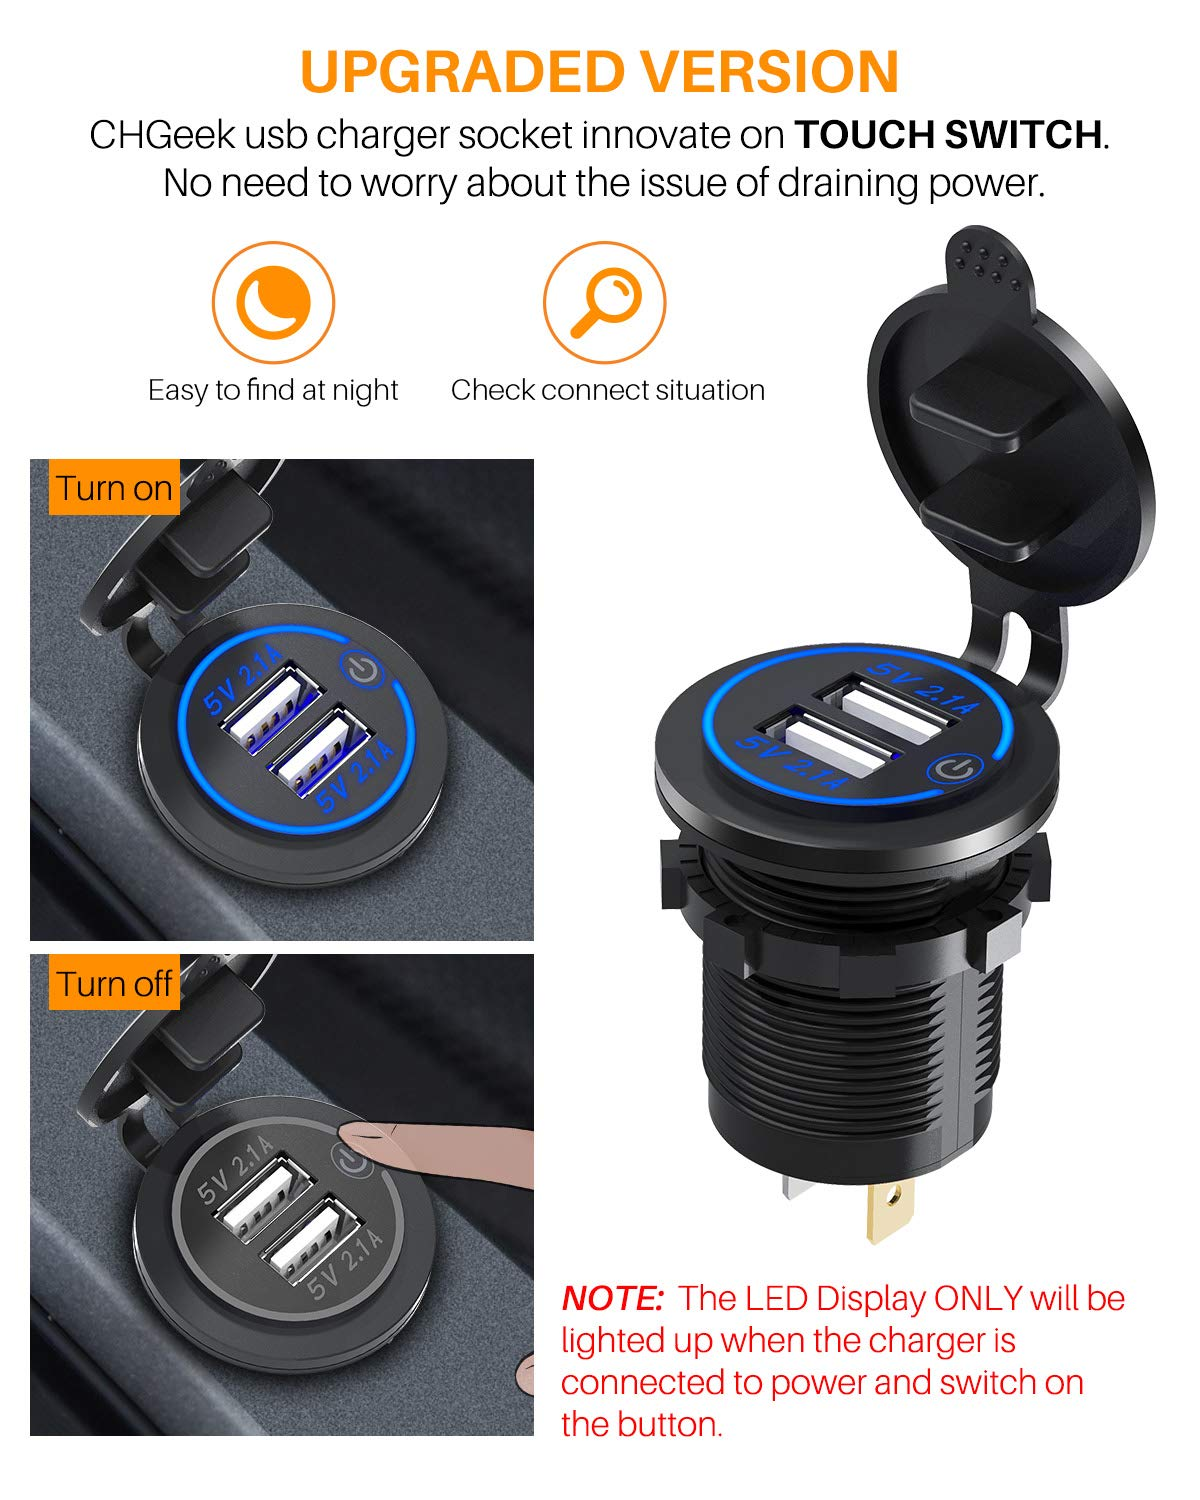 Boat CHGeek 12V//24V 36W Aluminum Waterproof Dual QC3.0 USB Fast Charger Socket Power Outlet with LED Digital Voltmeter for Marine Truck and More Motorcycle 【2 Pack】 Quick Charge 3.0 Car Charger